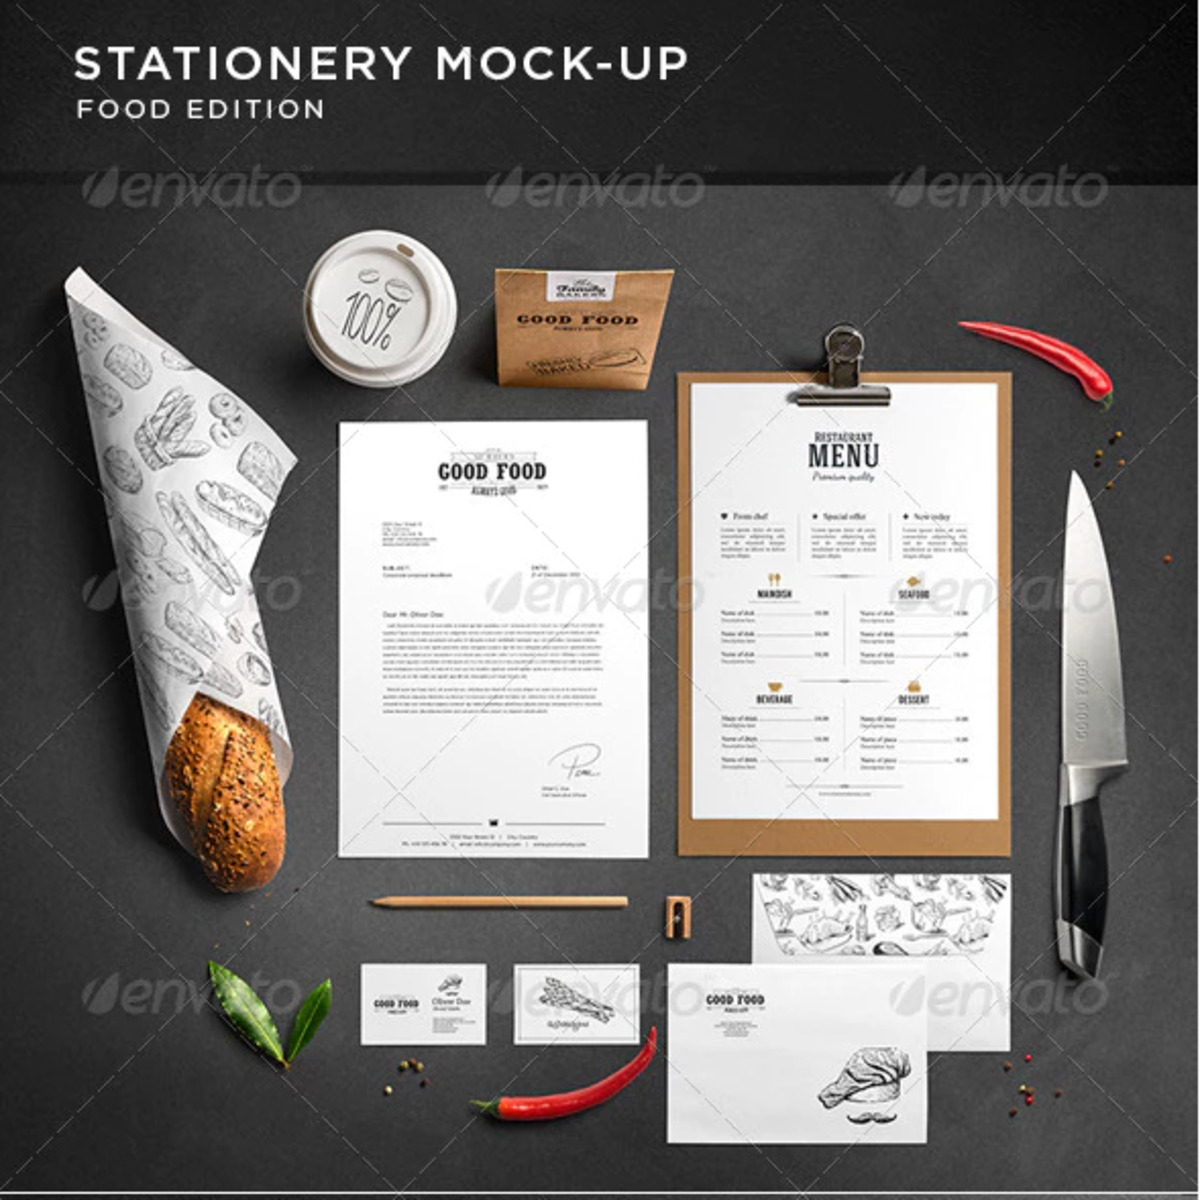 Stationery Branding Mockup Food Edition